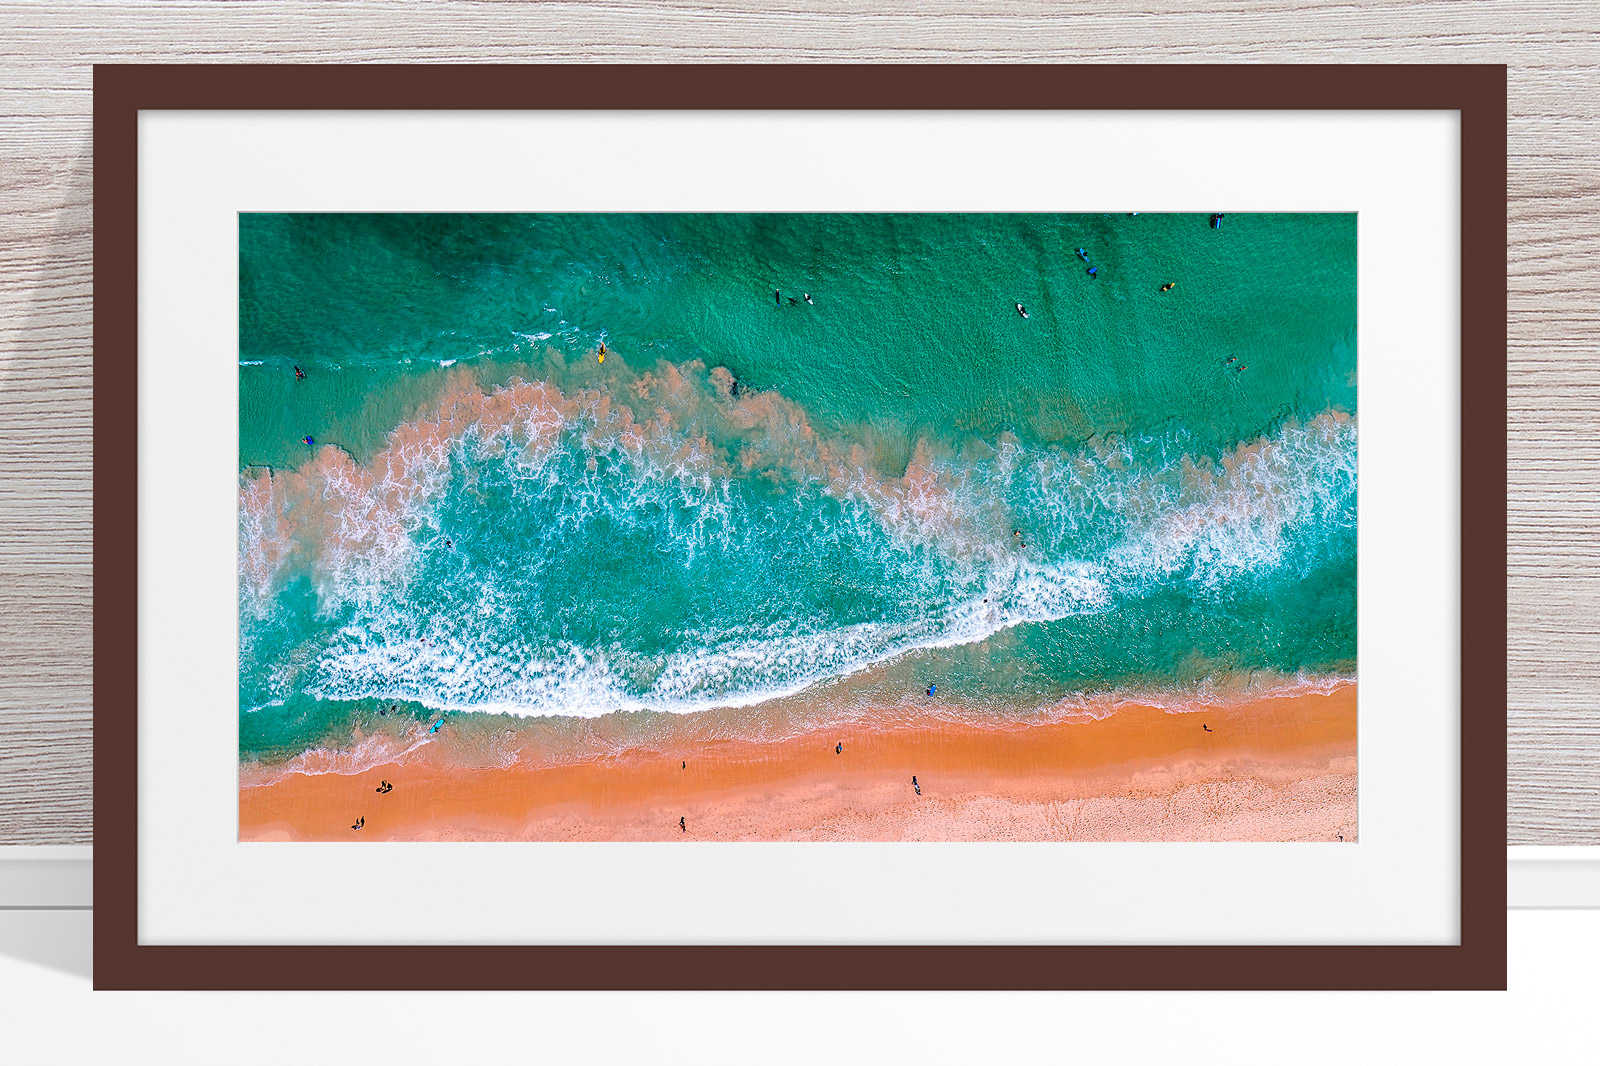 001 - Jason Mazur - 'Scarborough Beach Aerial' Dark Frame